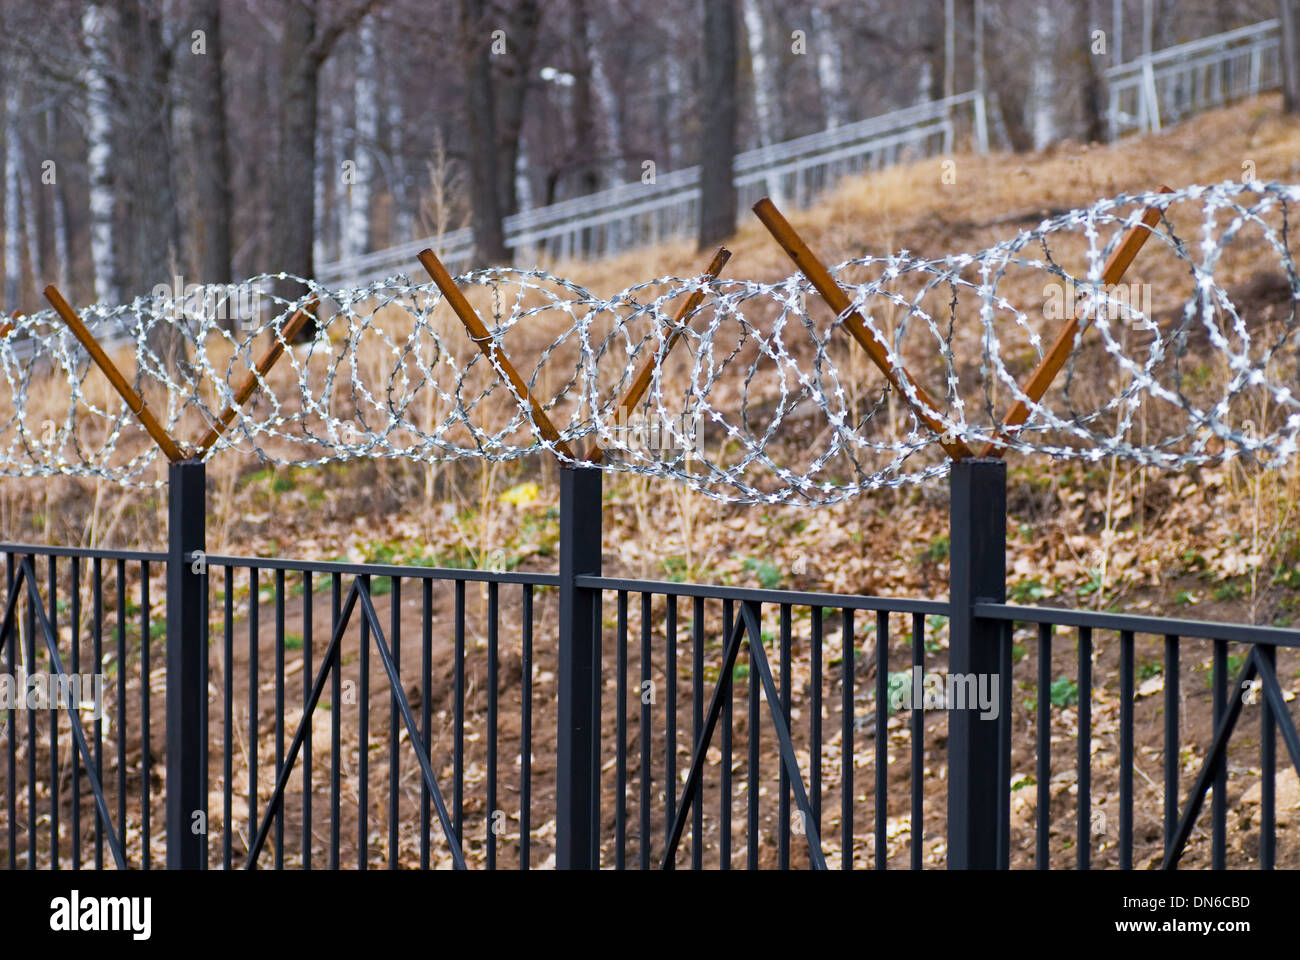 A barbed wire fence of closeup - Stock Image